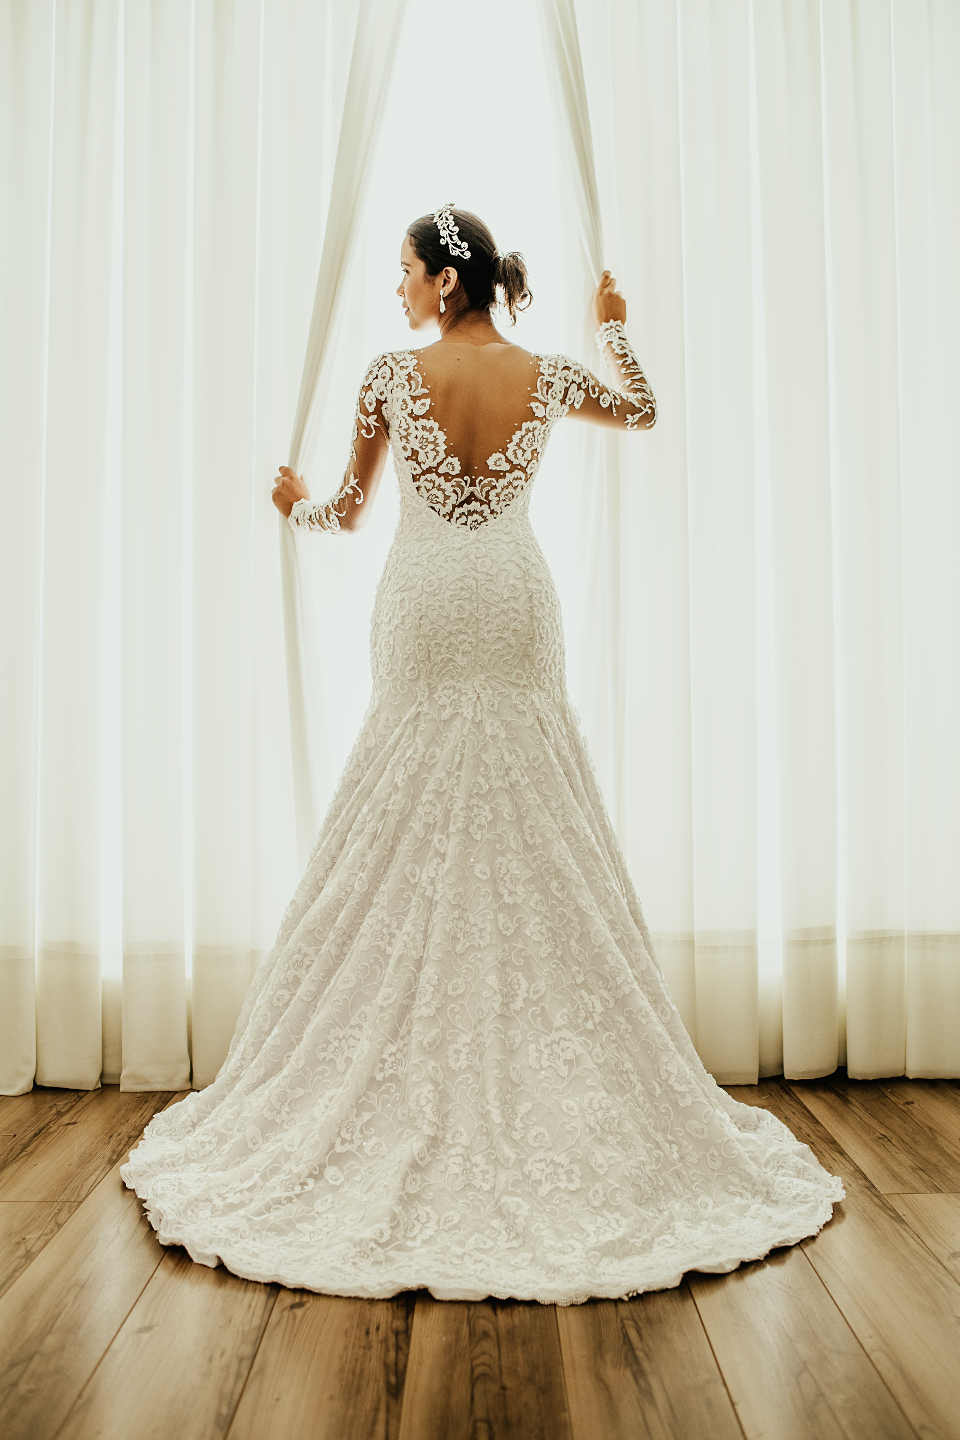 Traditionally, the bride's family pays for the bride's dress